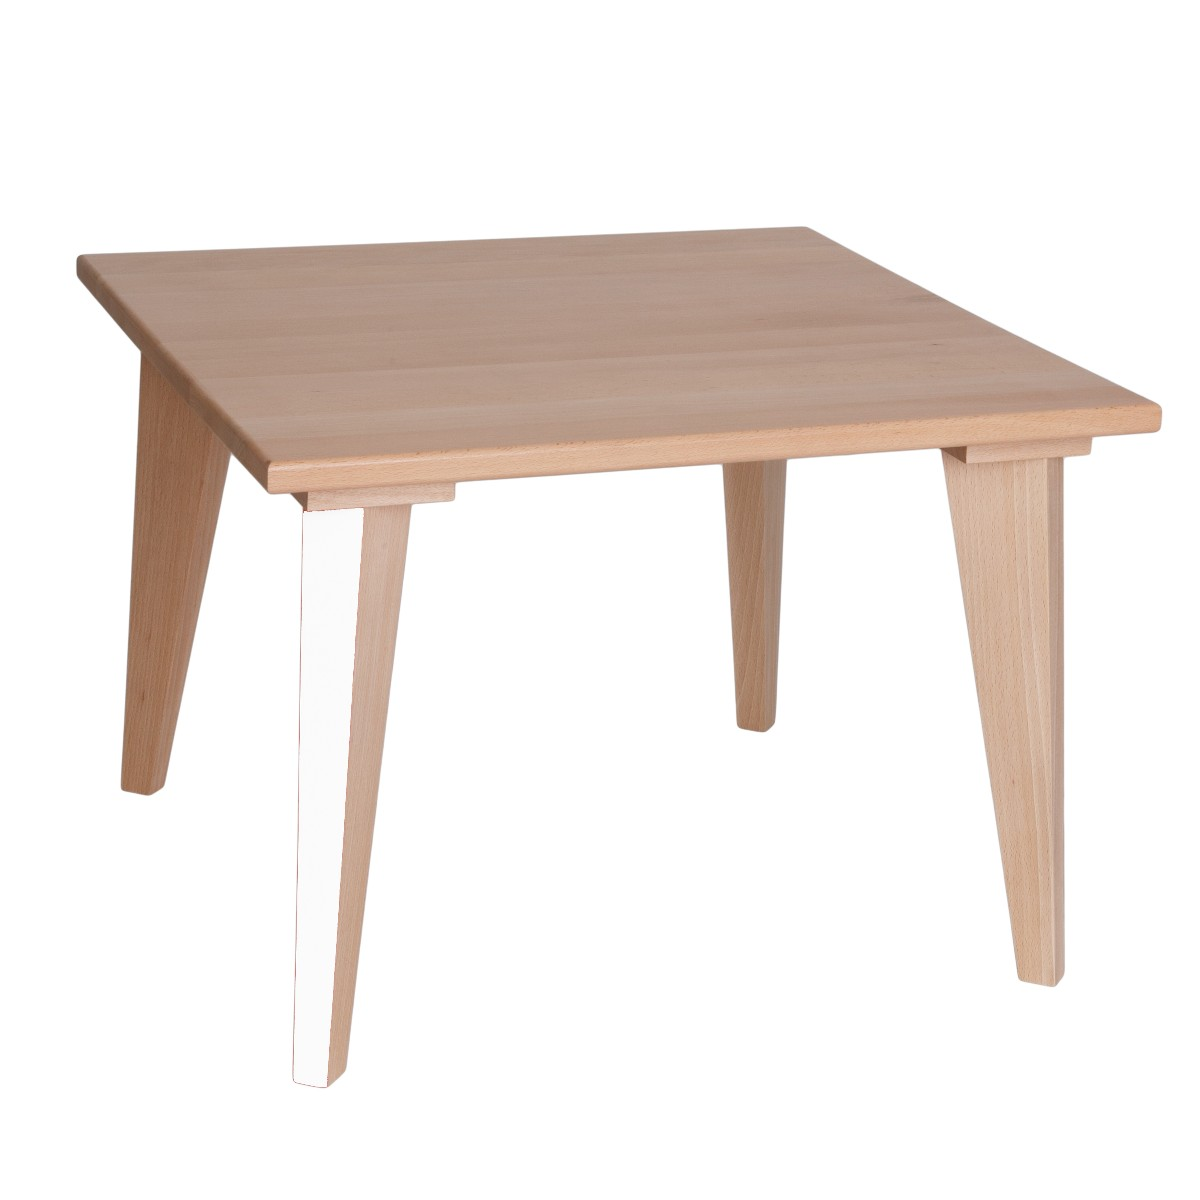 Table basse mini boudoir blanc loft paulette sacha - Table basse pour salon ...